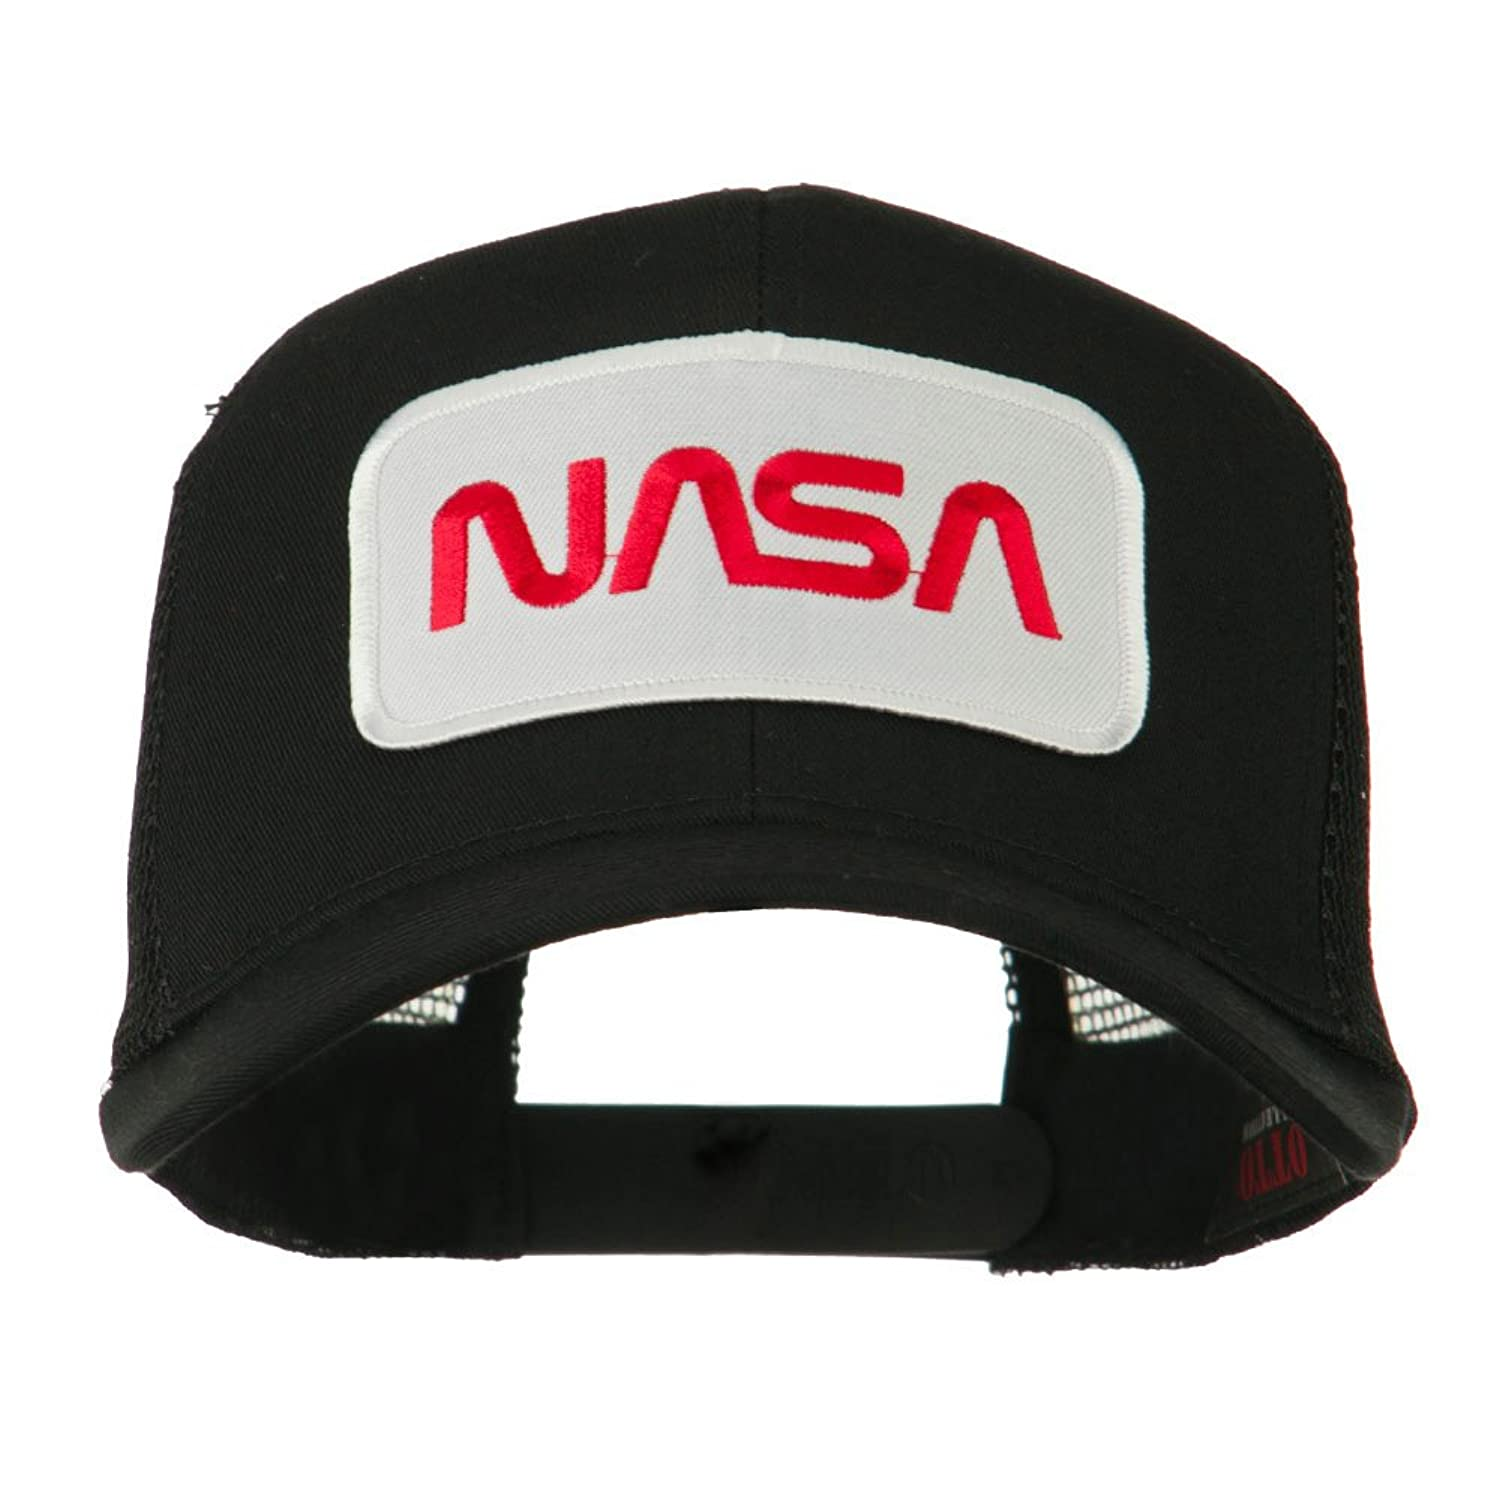 Old nasa logo space retro funny geek nerd mesh trucker cap hat cap jpg  1500x1500 Cool 49c1dcd7aa6e